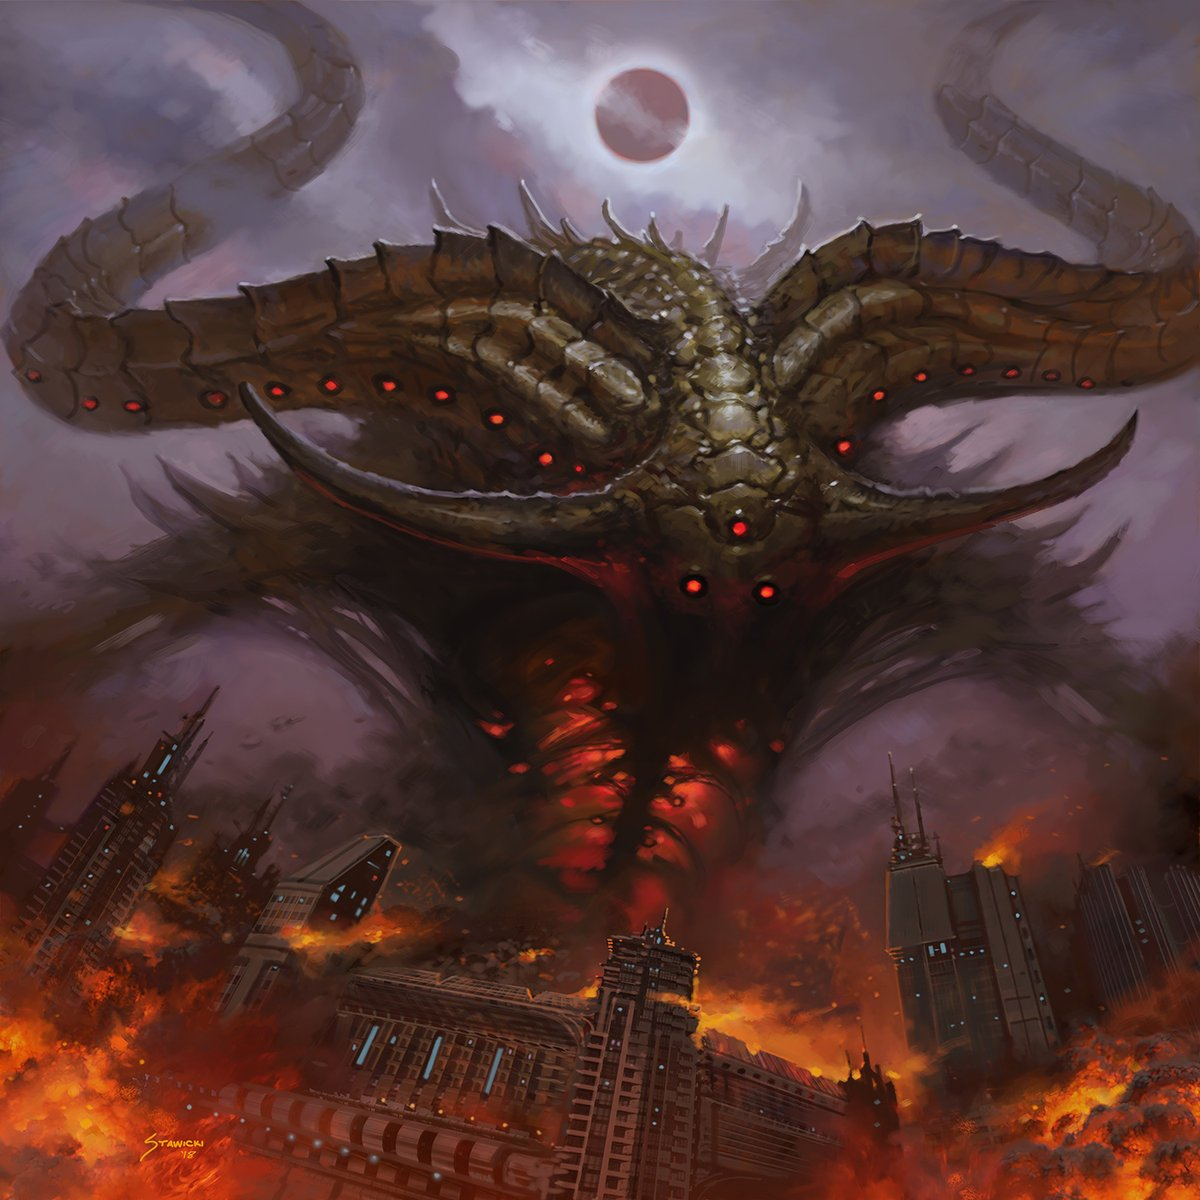 Stream Oh Sees' new album 'Smote Reverser' https://t.co/eeHcJRXl9h https://t.co/o6InJHEmQh